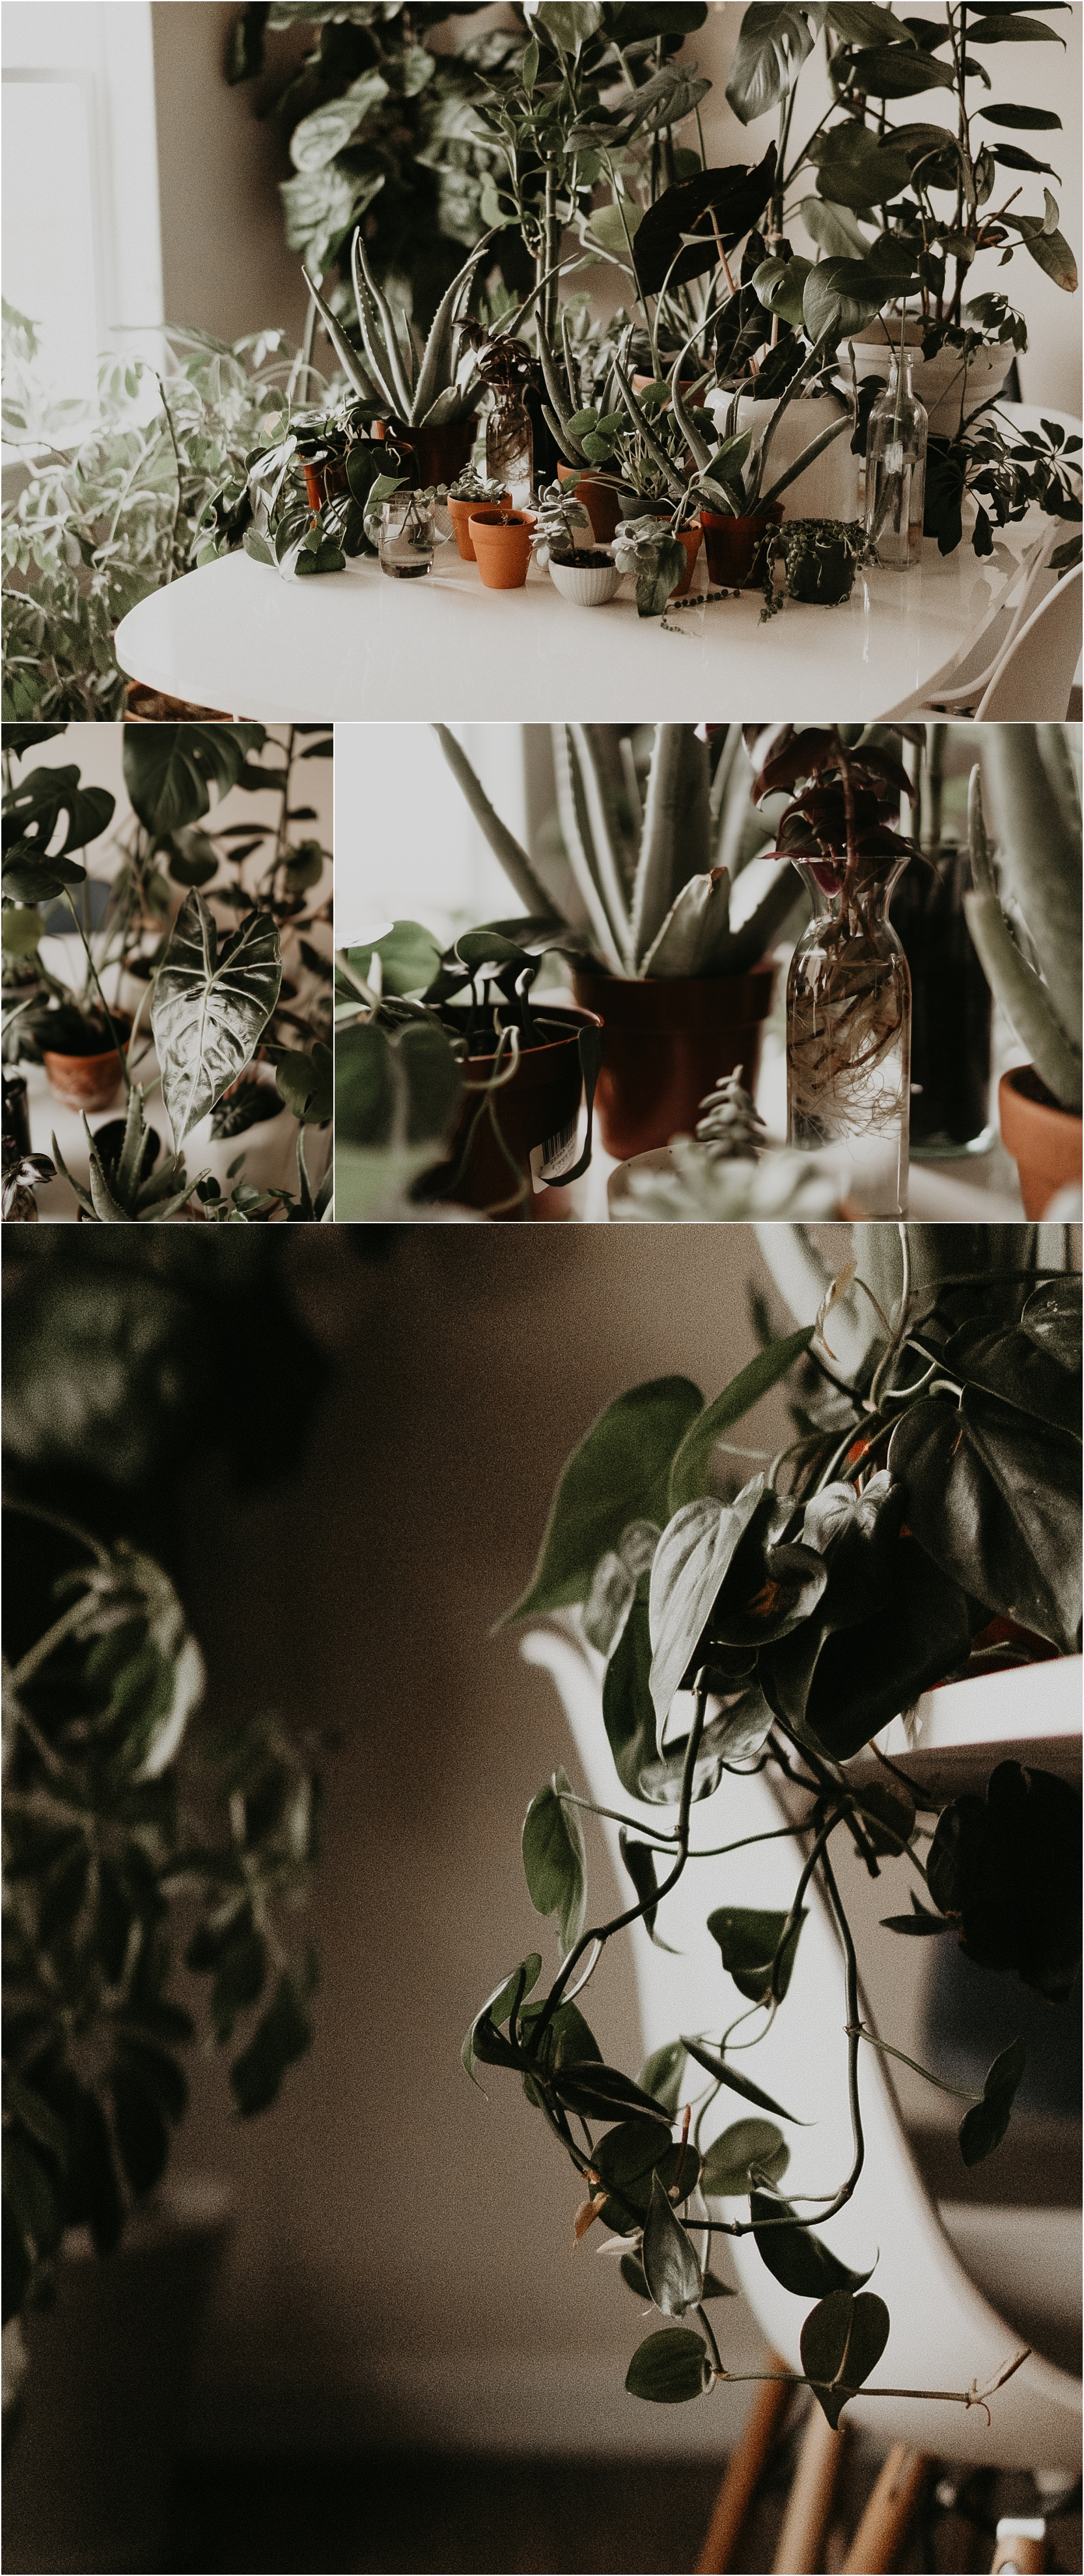 Boise Senior Photographer Boise Boudoir Photographer Makayla Madden Plant Lady Indoor House Plant Care Advice Tips Pothos Fiddle Leaf Plant Care 5-1-1 Potting Mix